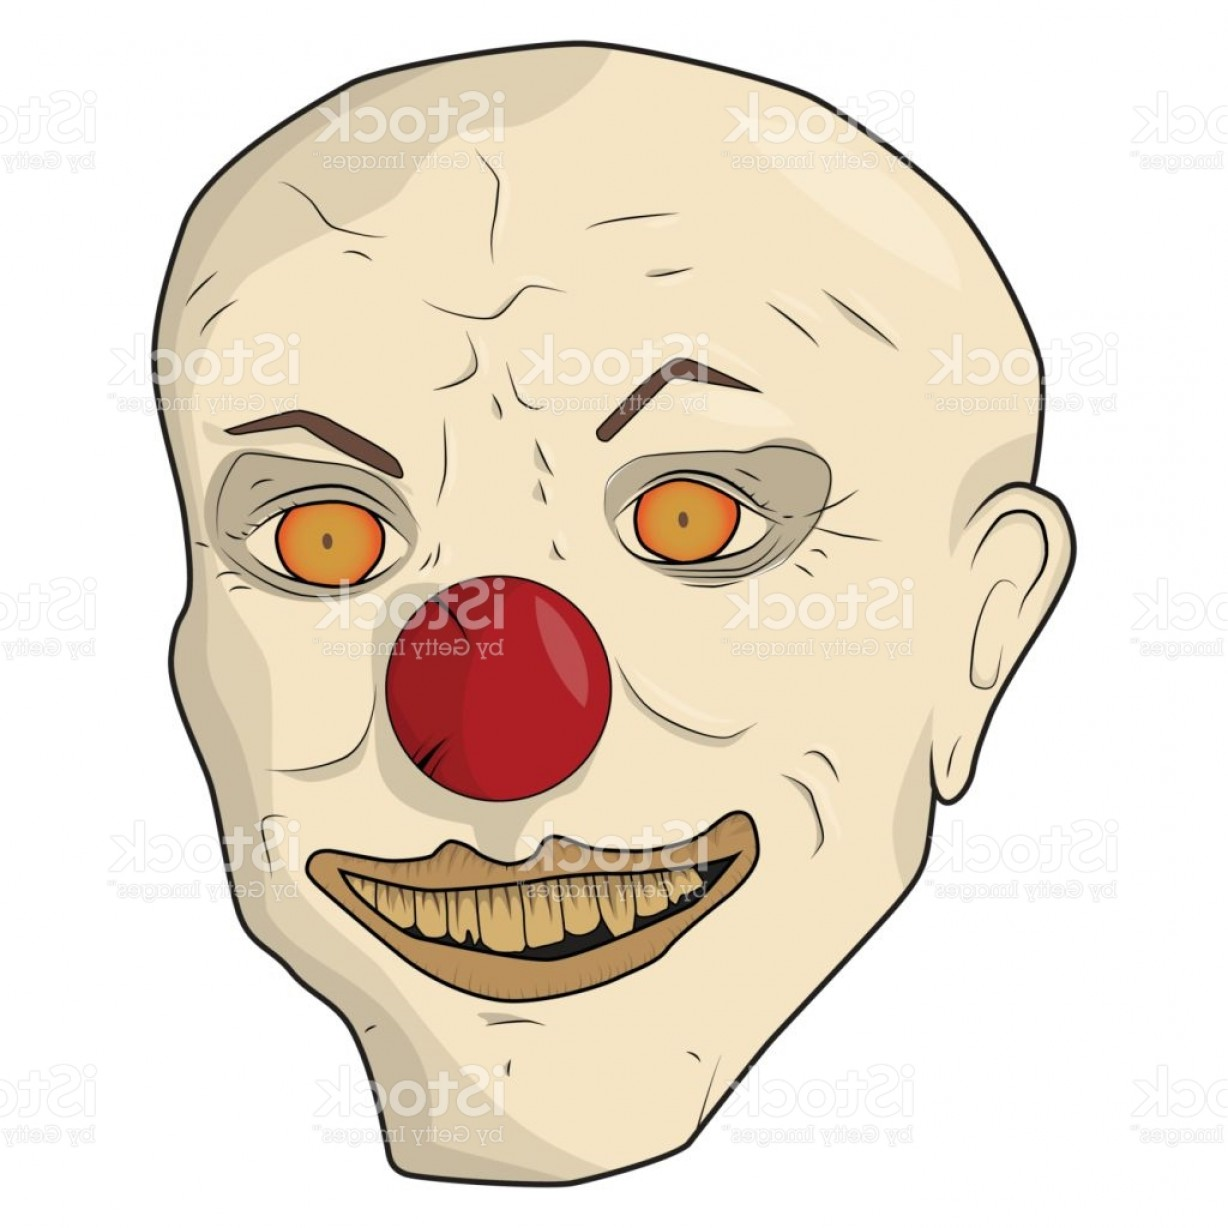 Joker Smile Vector Art: Head Scary Clown The Bald Man Smiles Yellow Teeth Gm